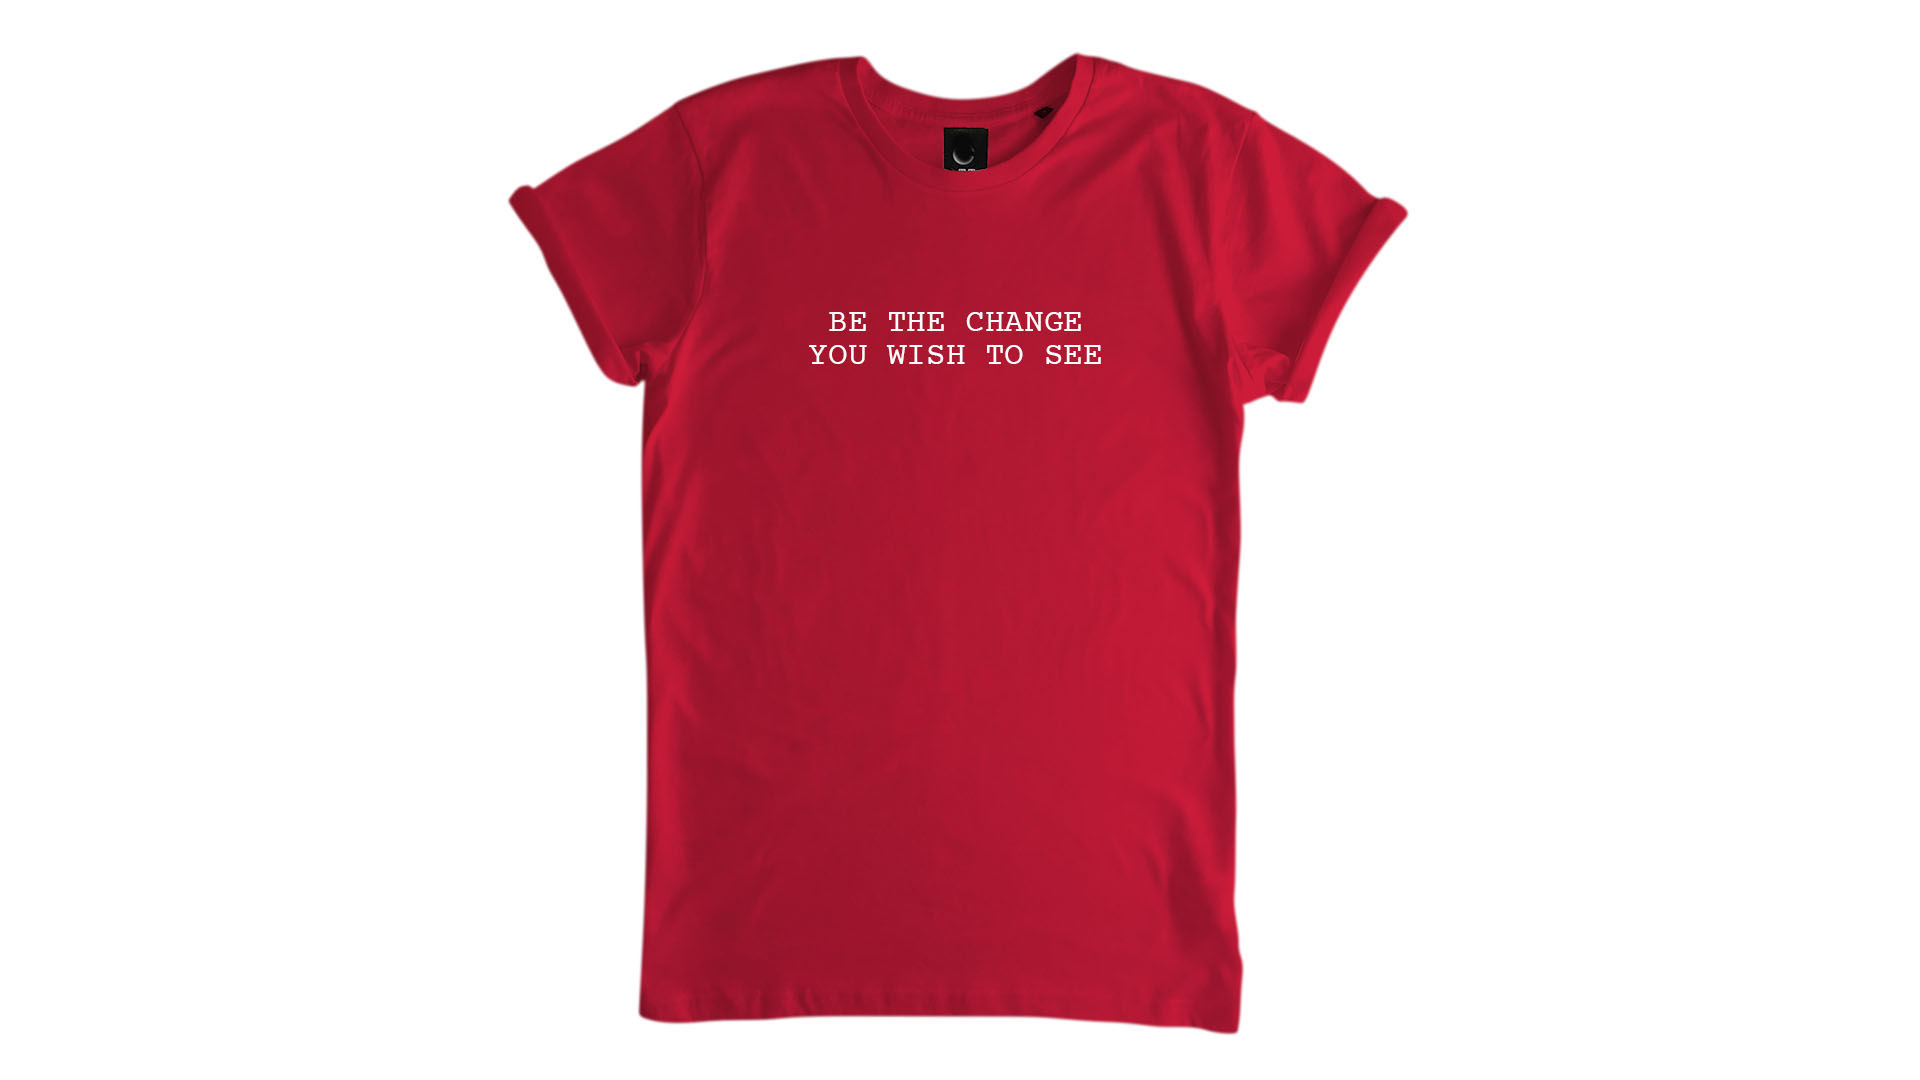 LiveLearn.Yoga Yoga T-Shirt Organic Cotton Be the Change You Wish to See Red